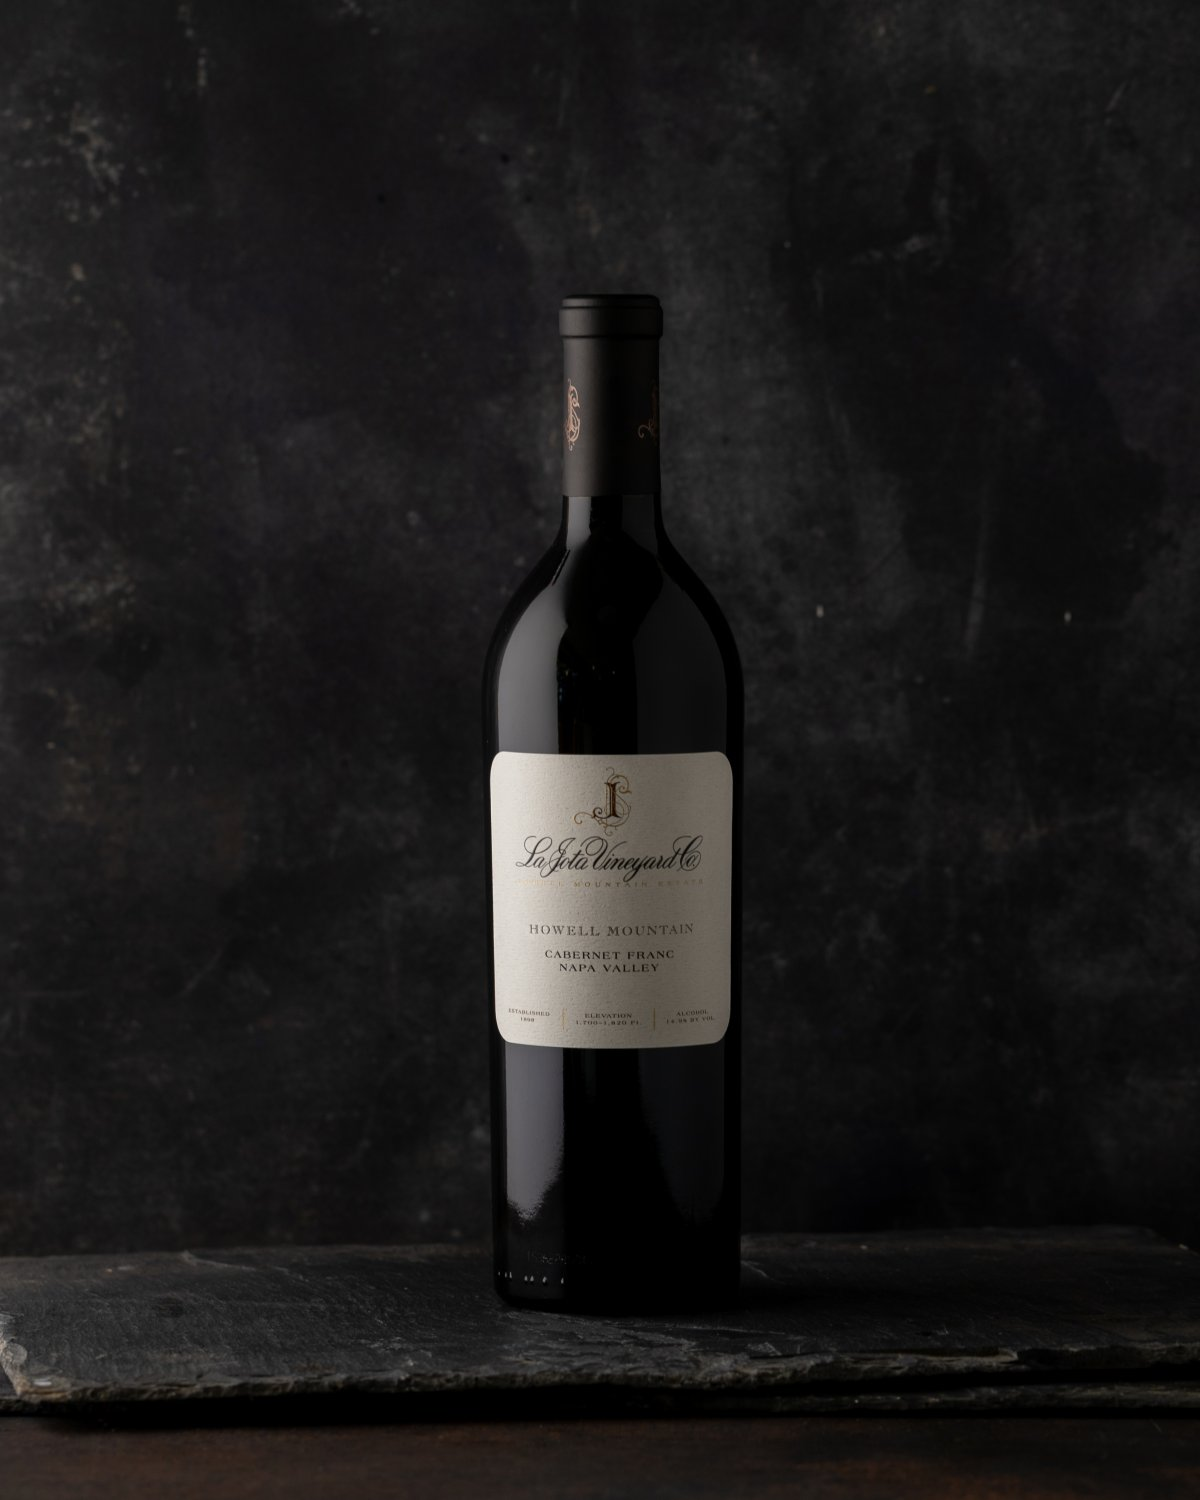 2013 La Jota Vineryard Co Howell Mountain Cabernet Franc